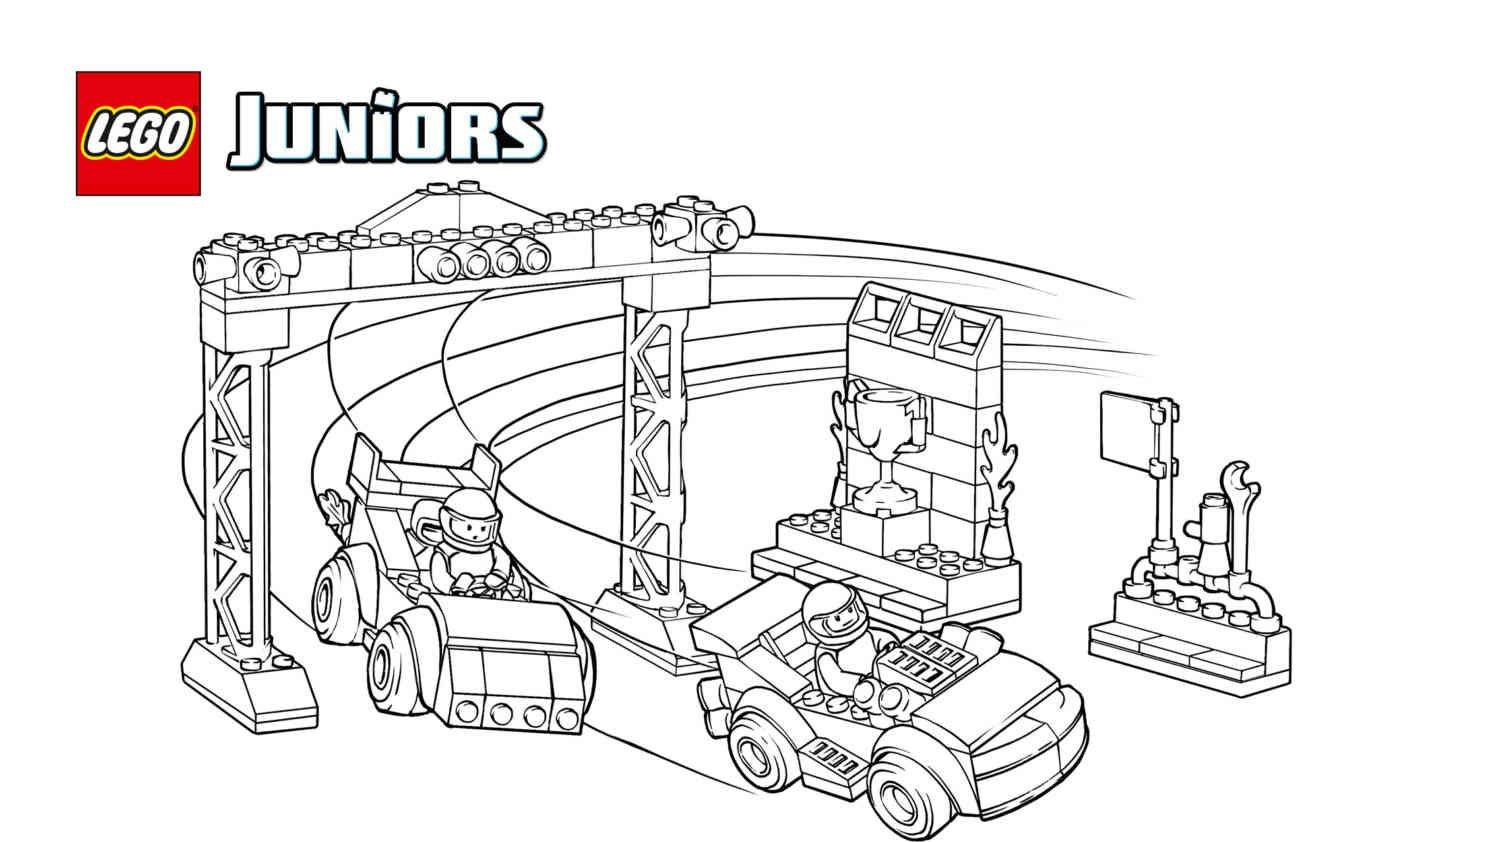 lego juniors race car competition coloring page coloring pages boys cars coloring pages. Black Bedroom Furniture Sets. Home Design Ideas